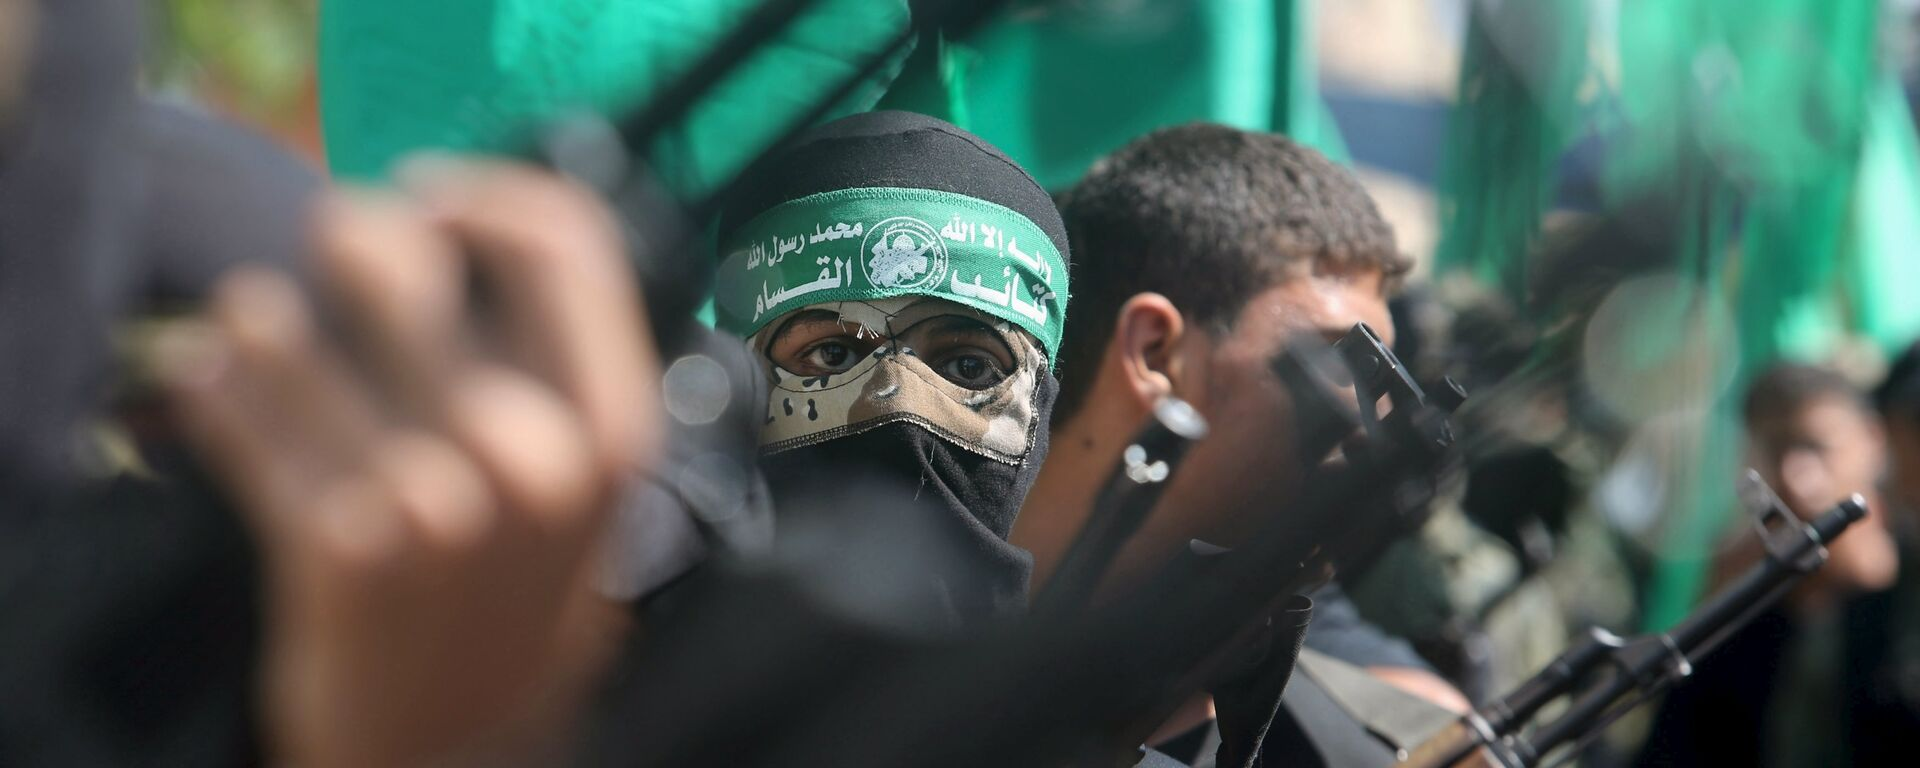 Palestinian Hamas militants take part in a protest against the Israeli police raid on Jerusalem's al-Aqsa mosque on Tuesday, in Khan Younis in the southern Gaza Strip, September 18, 2015. - Sputnik Mundo, 1920, 18.05.2021